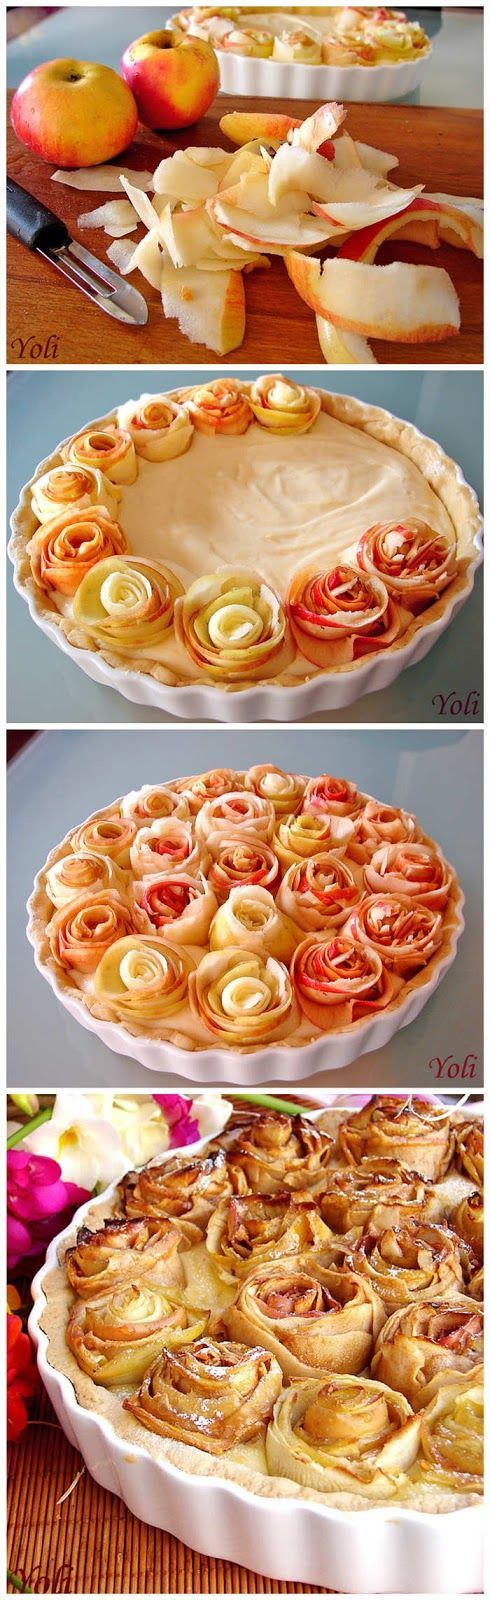 apple pie with apple roses